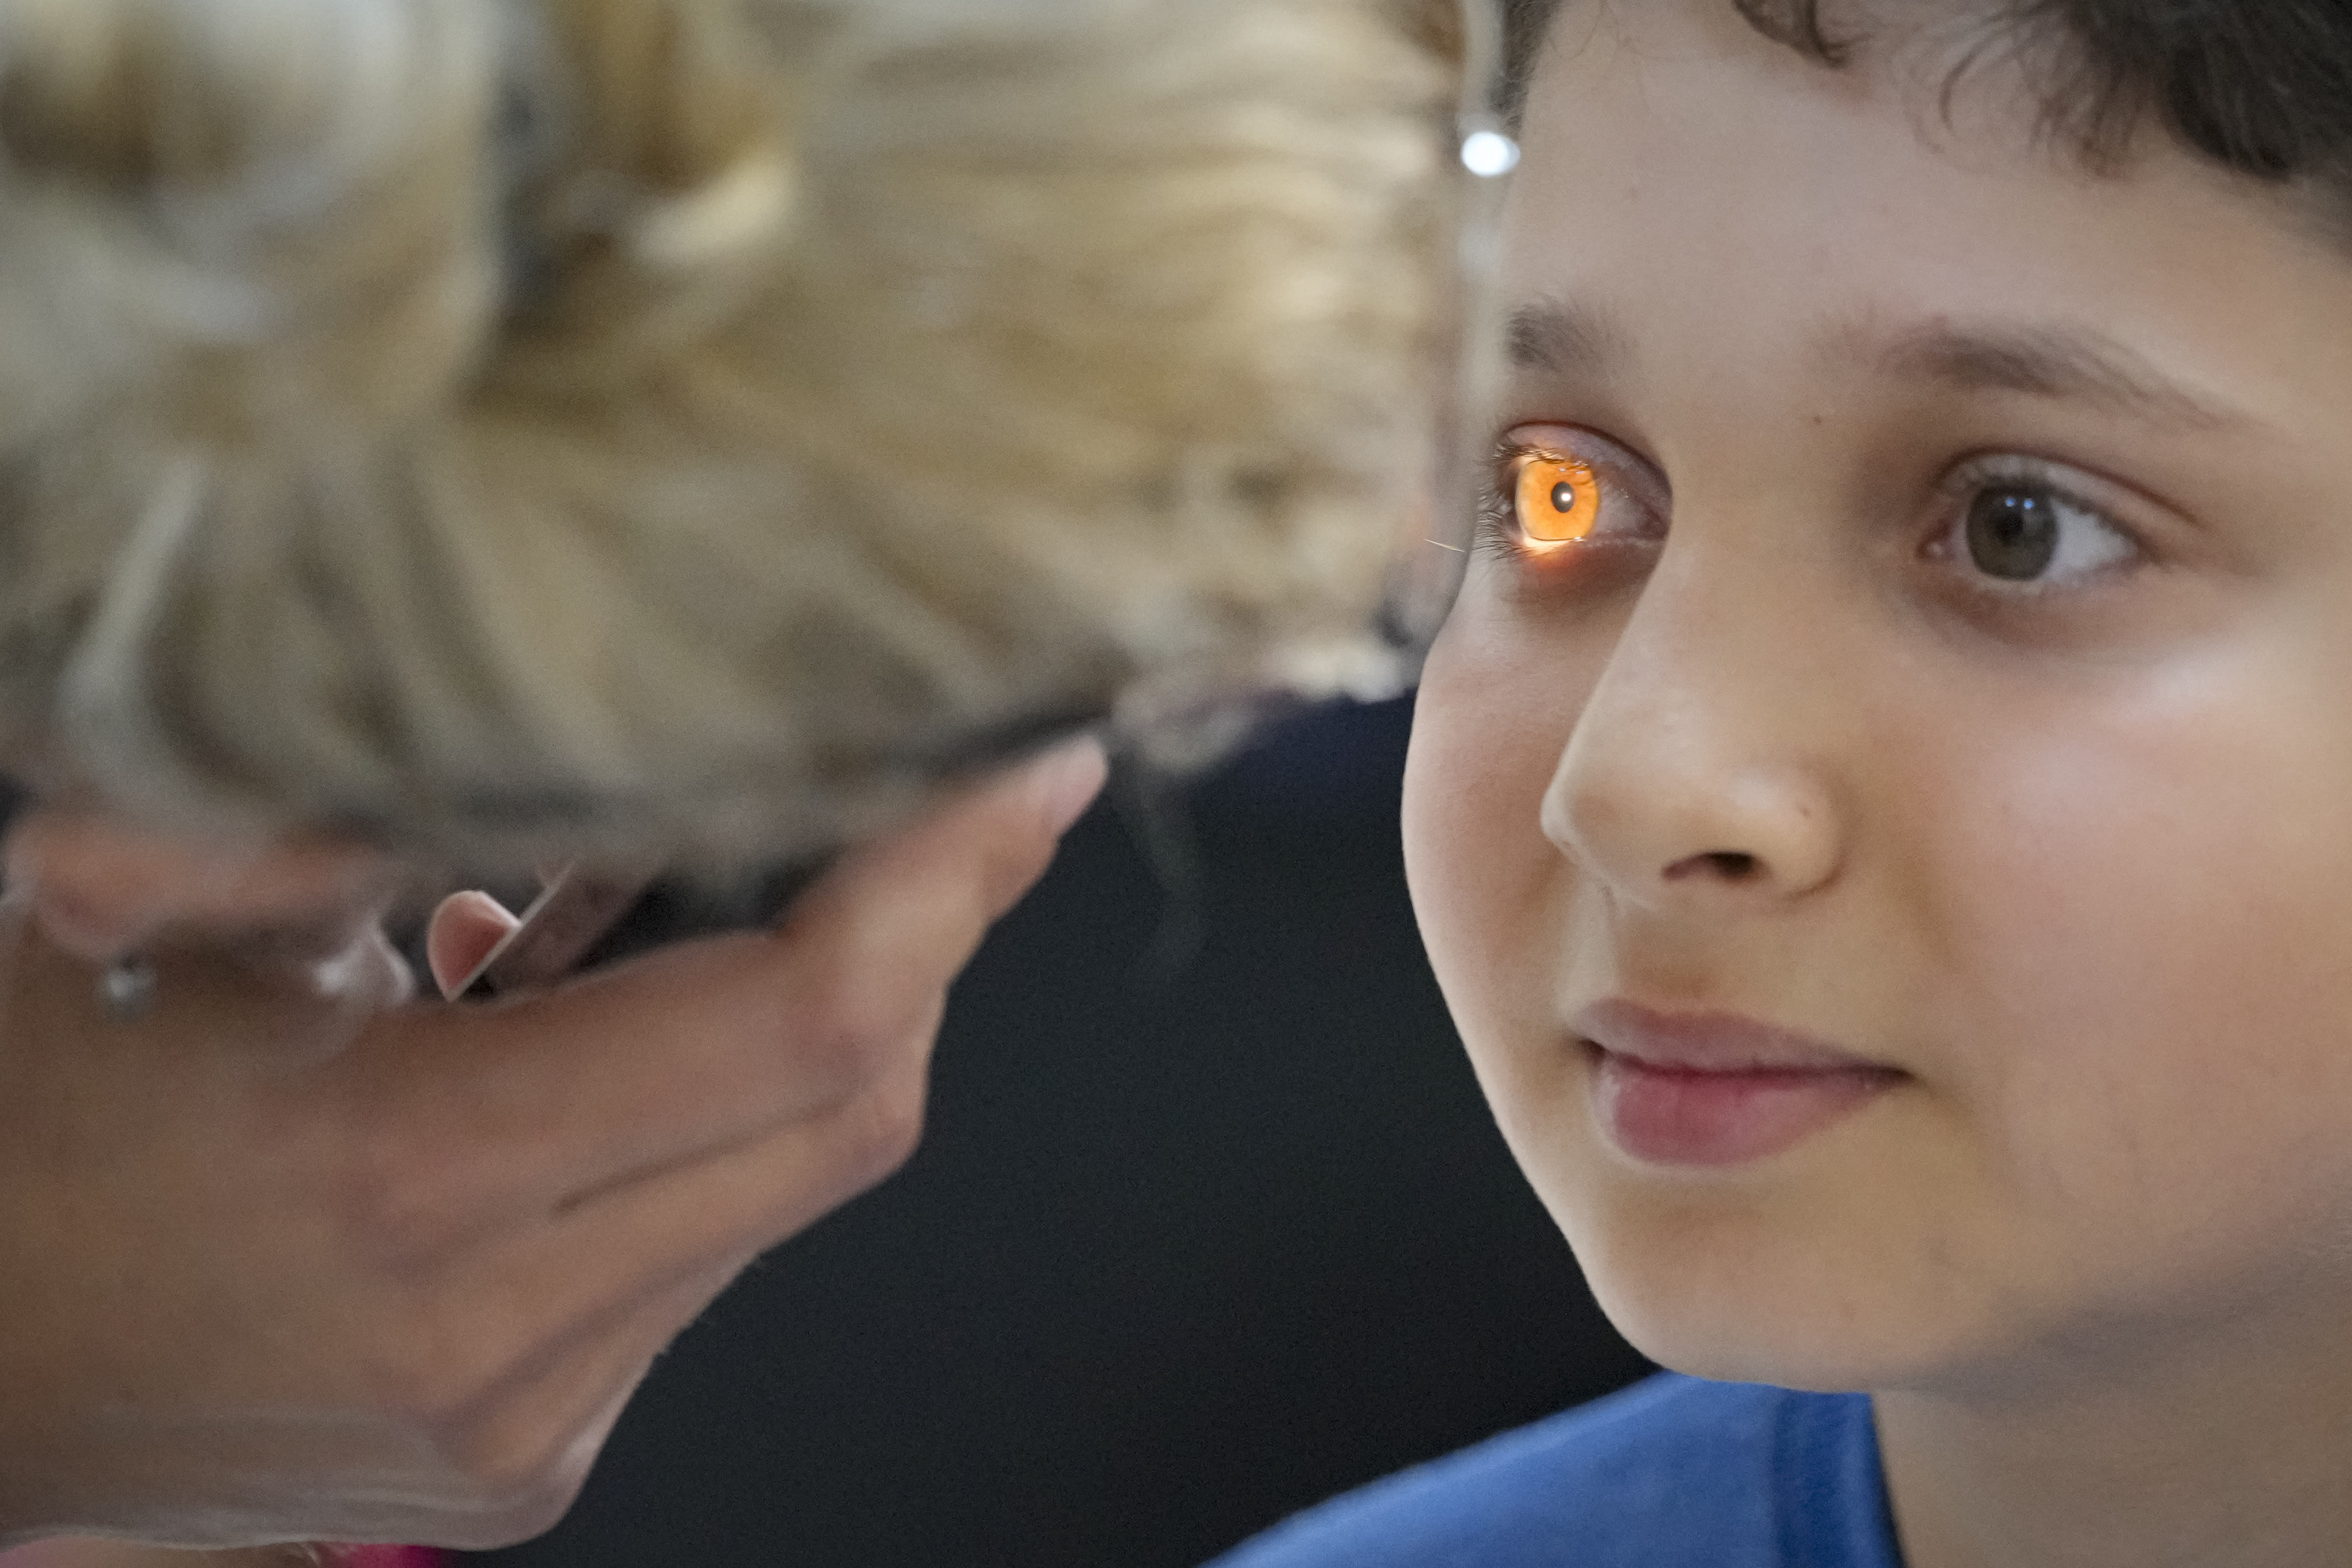 UN adopts first resolution on vision, aims to help 1 billion